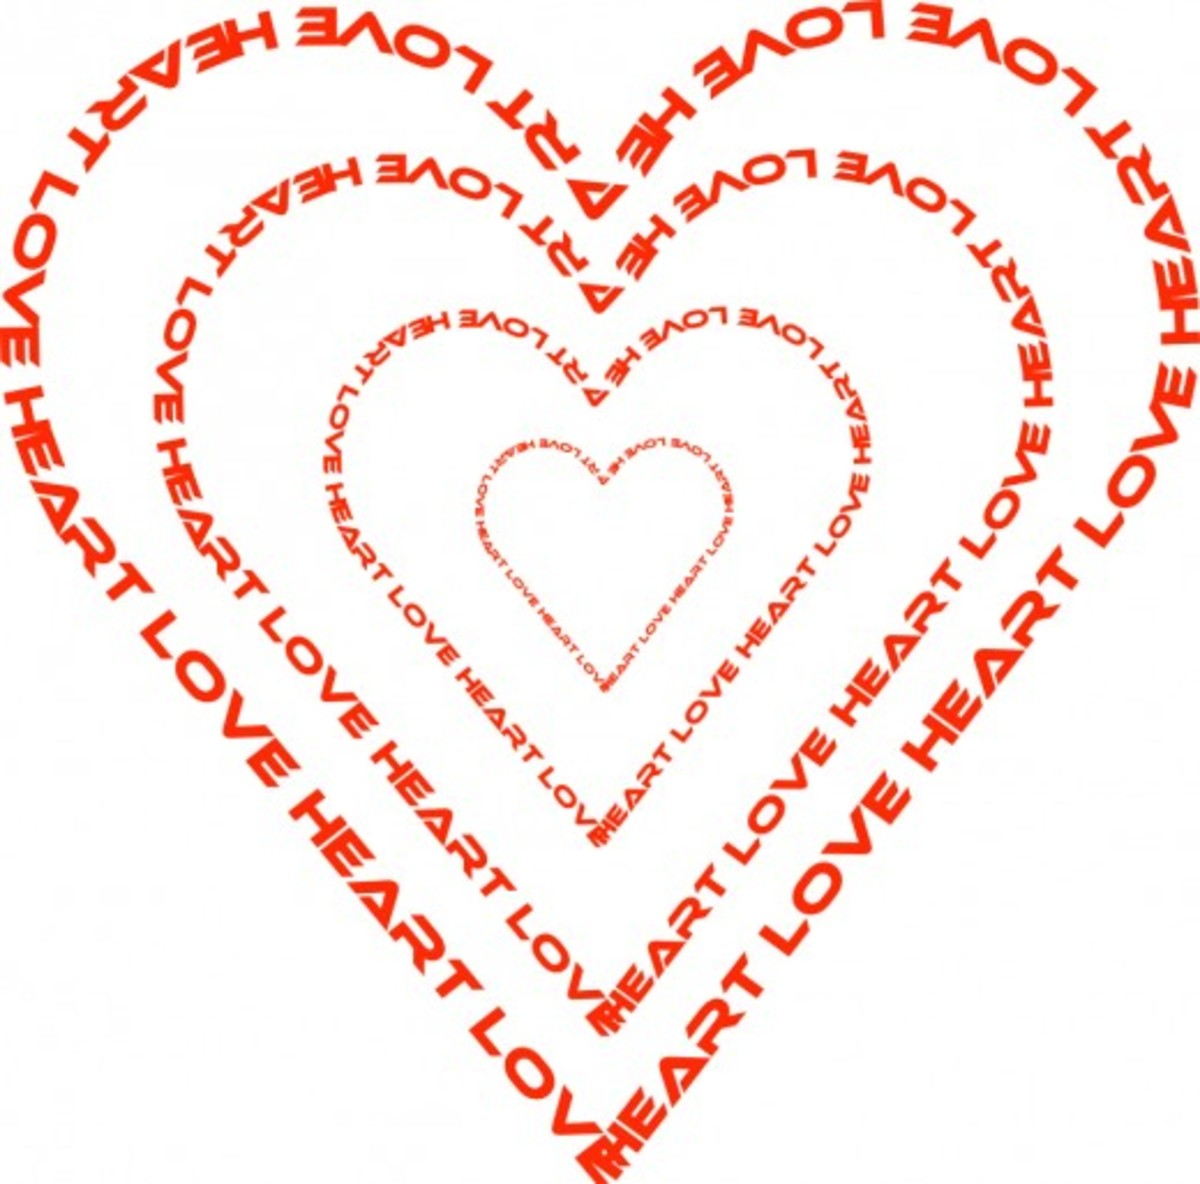 Love Word Heart Graphic